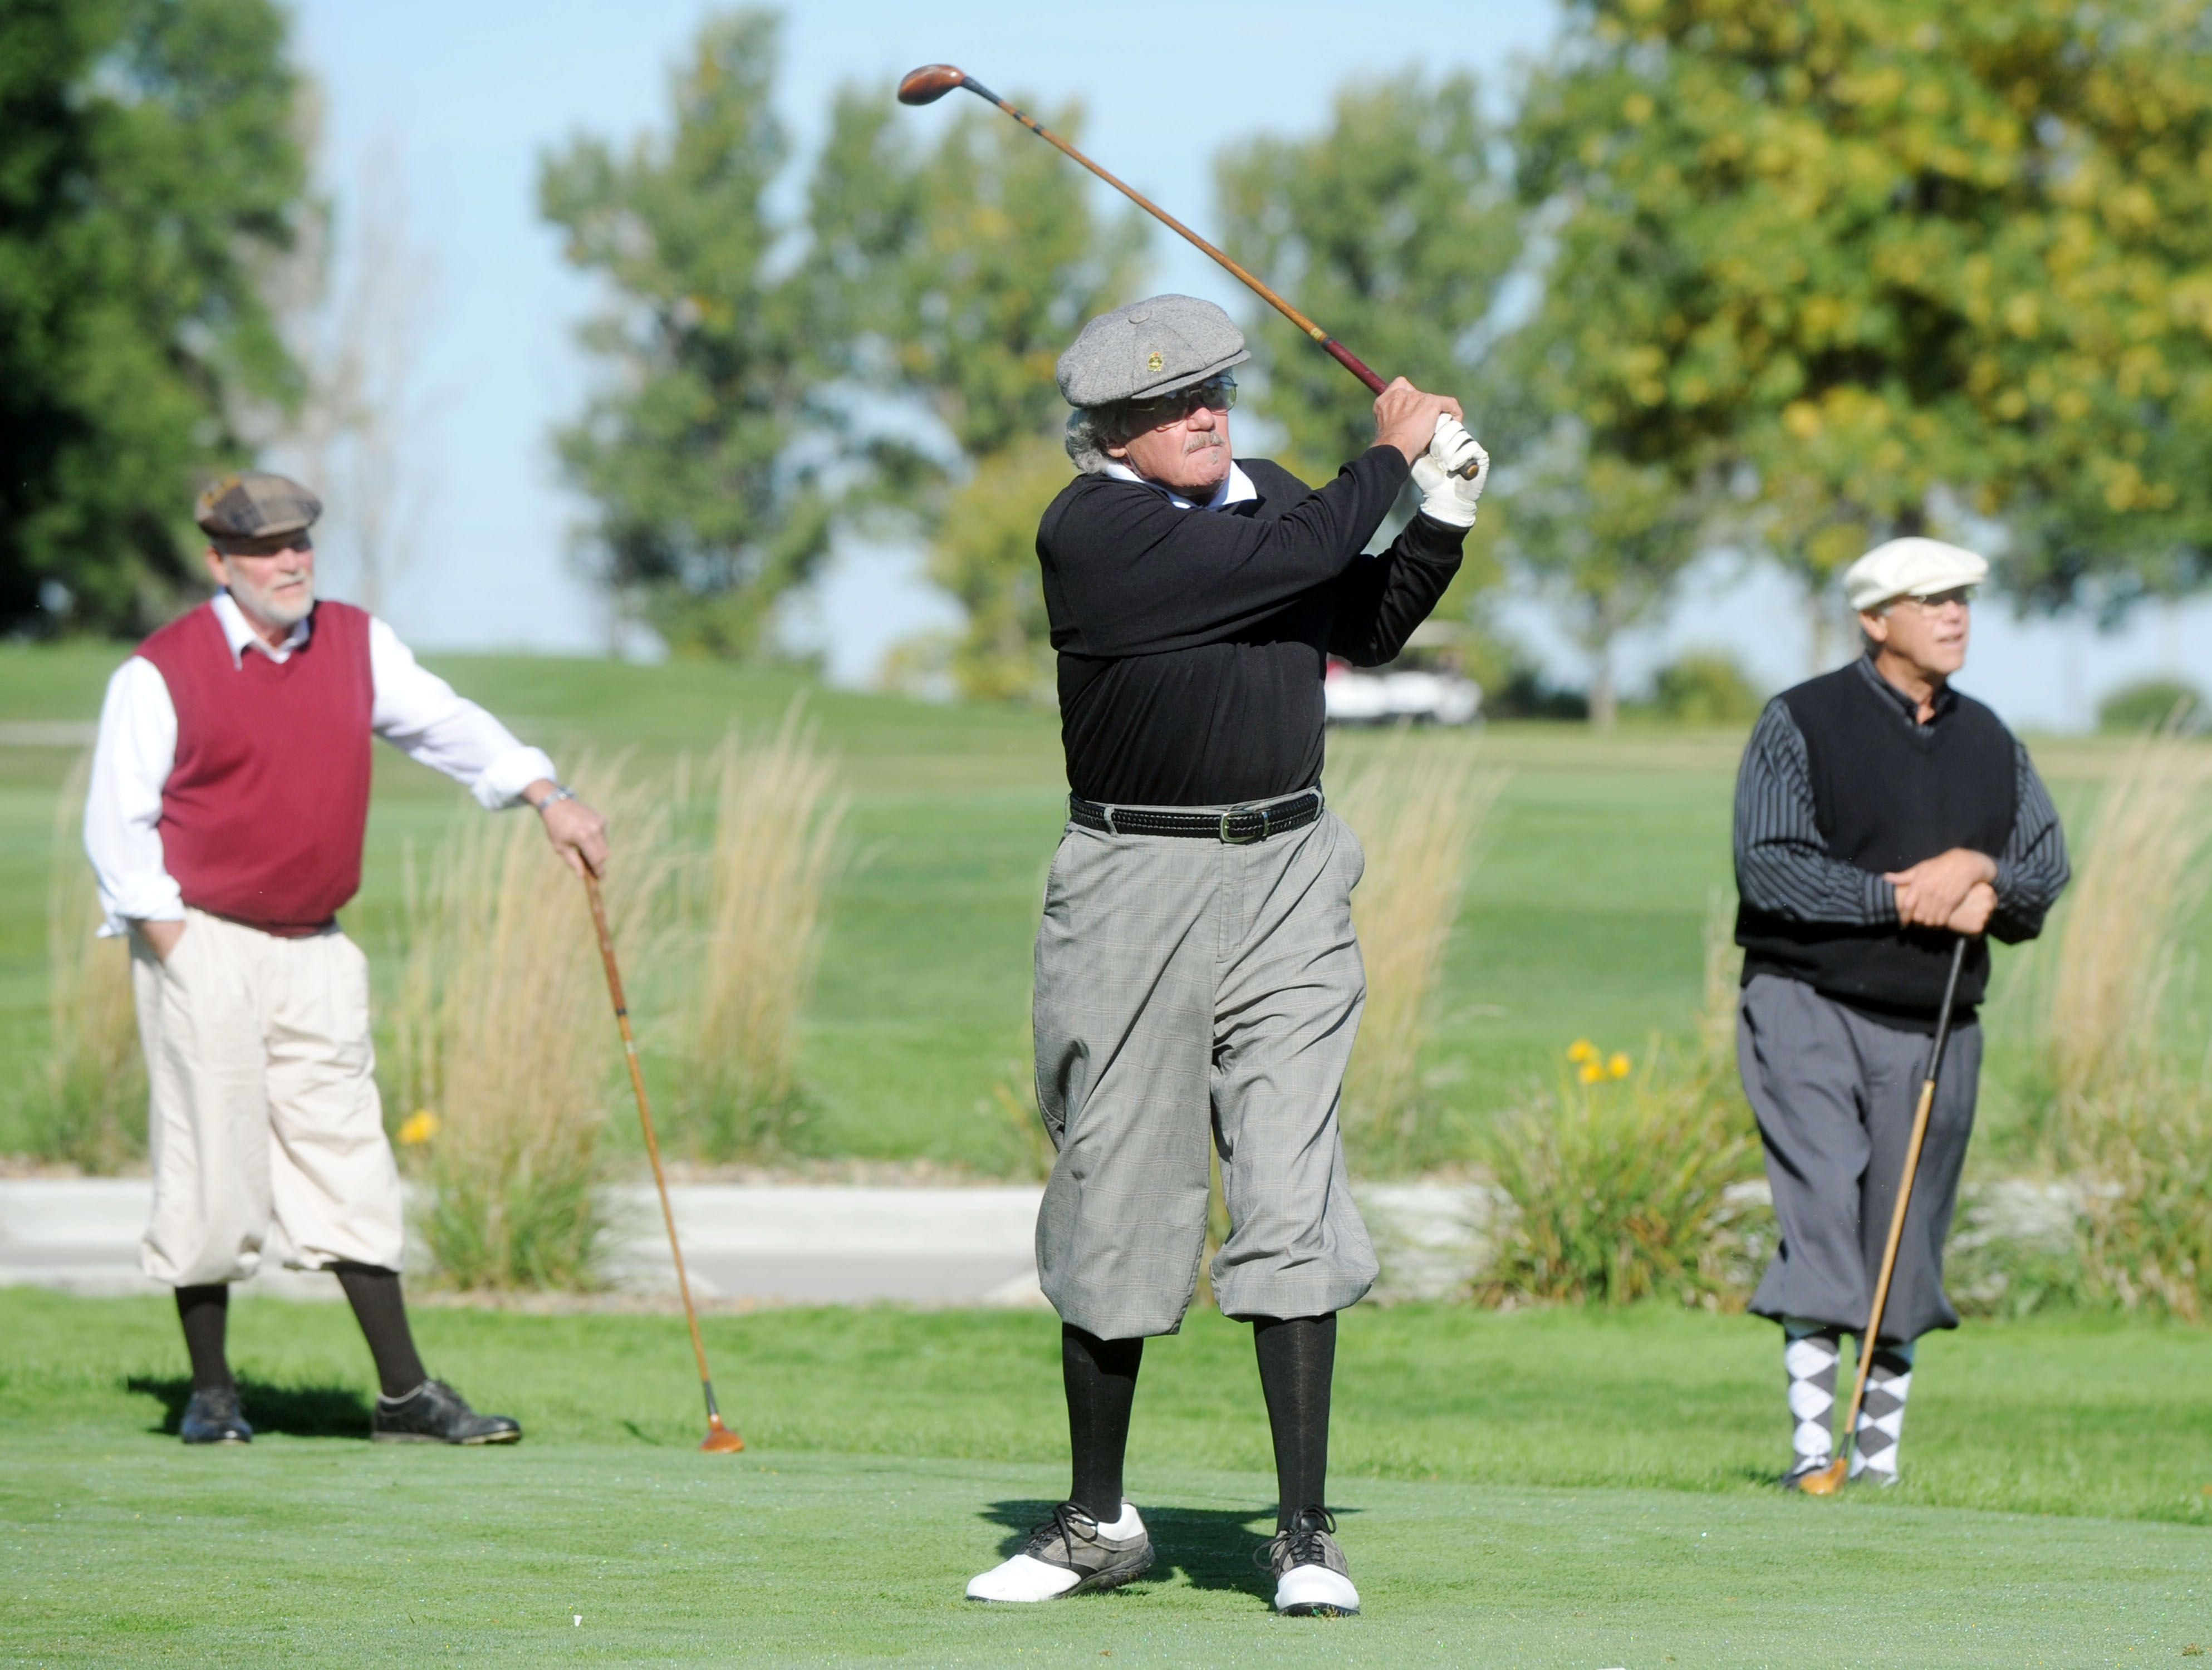 34+ Ames golf and country club membership cost ideas